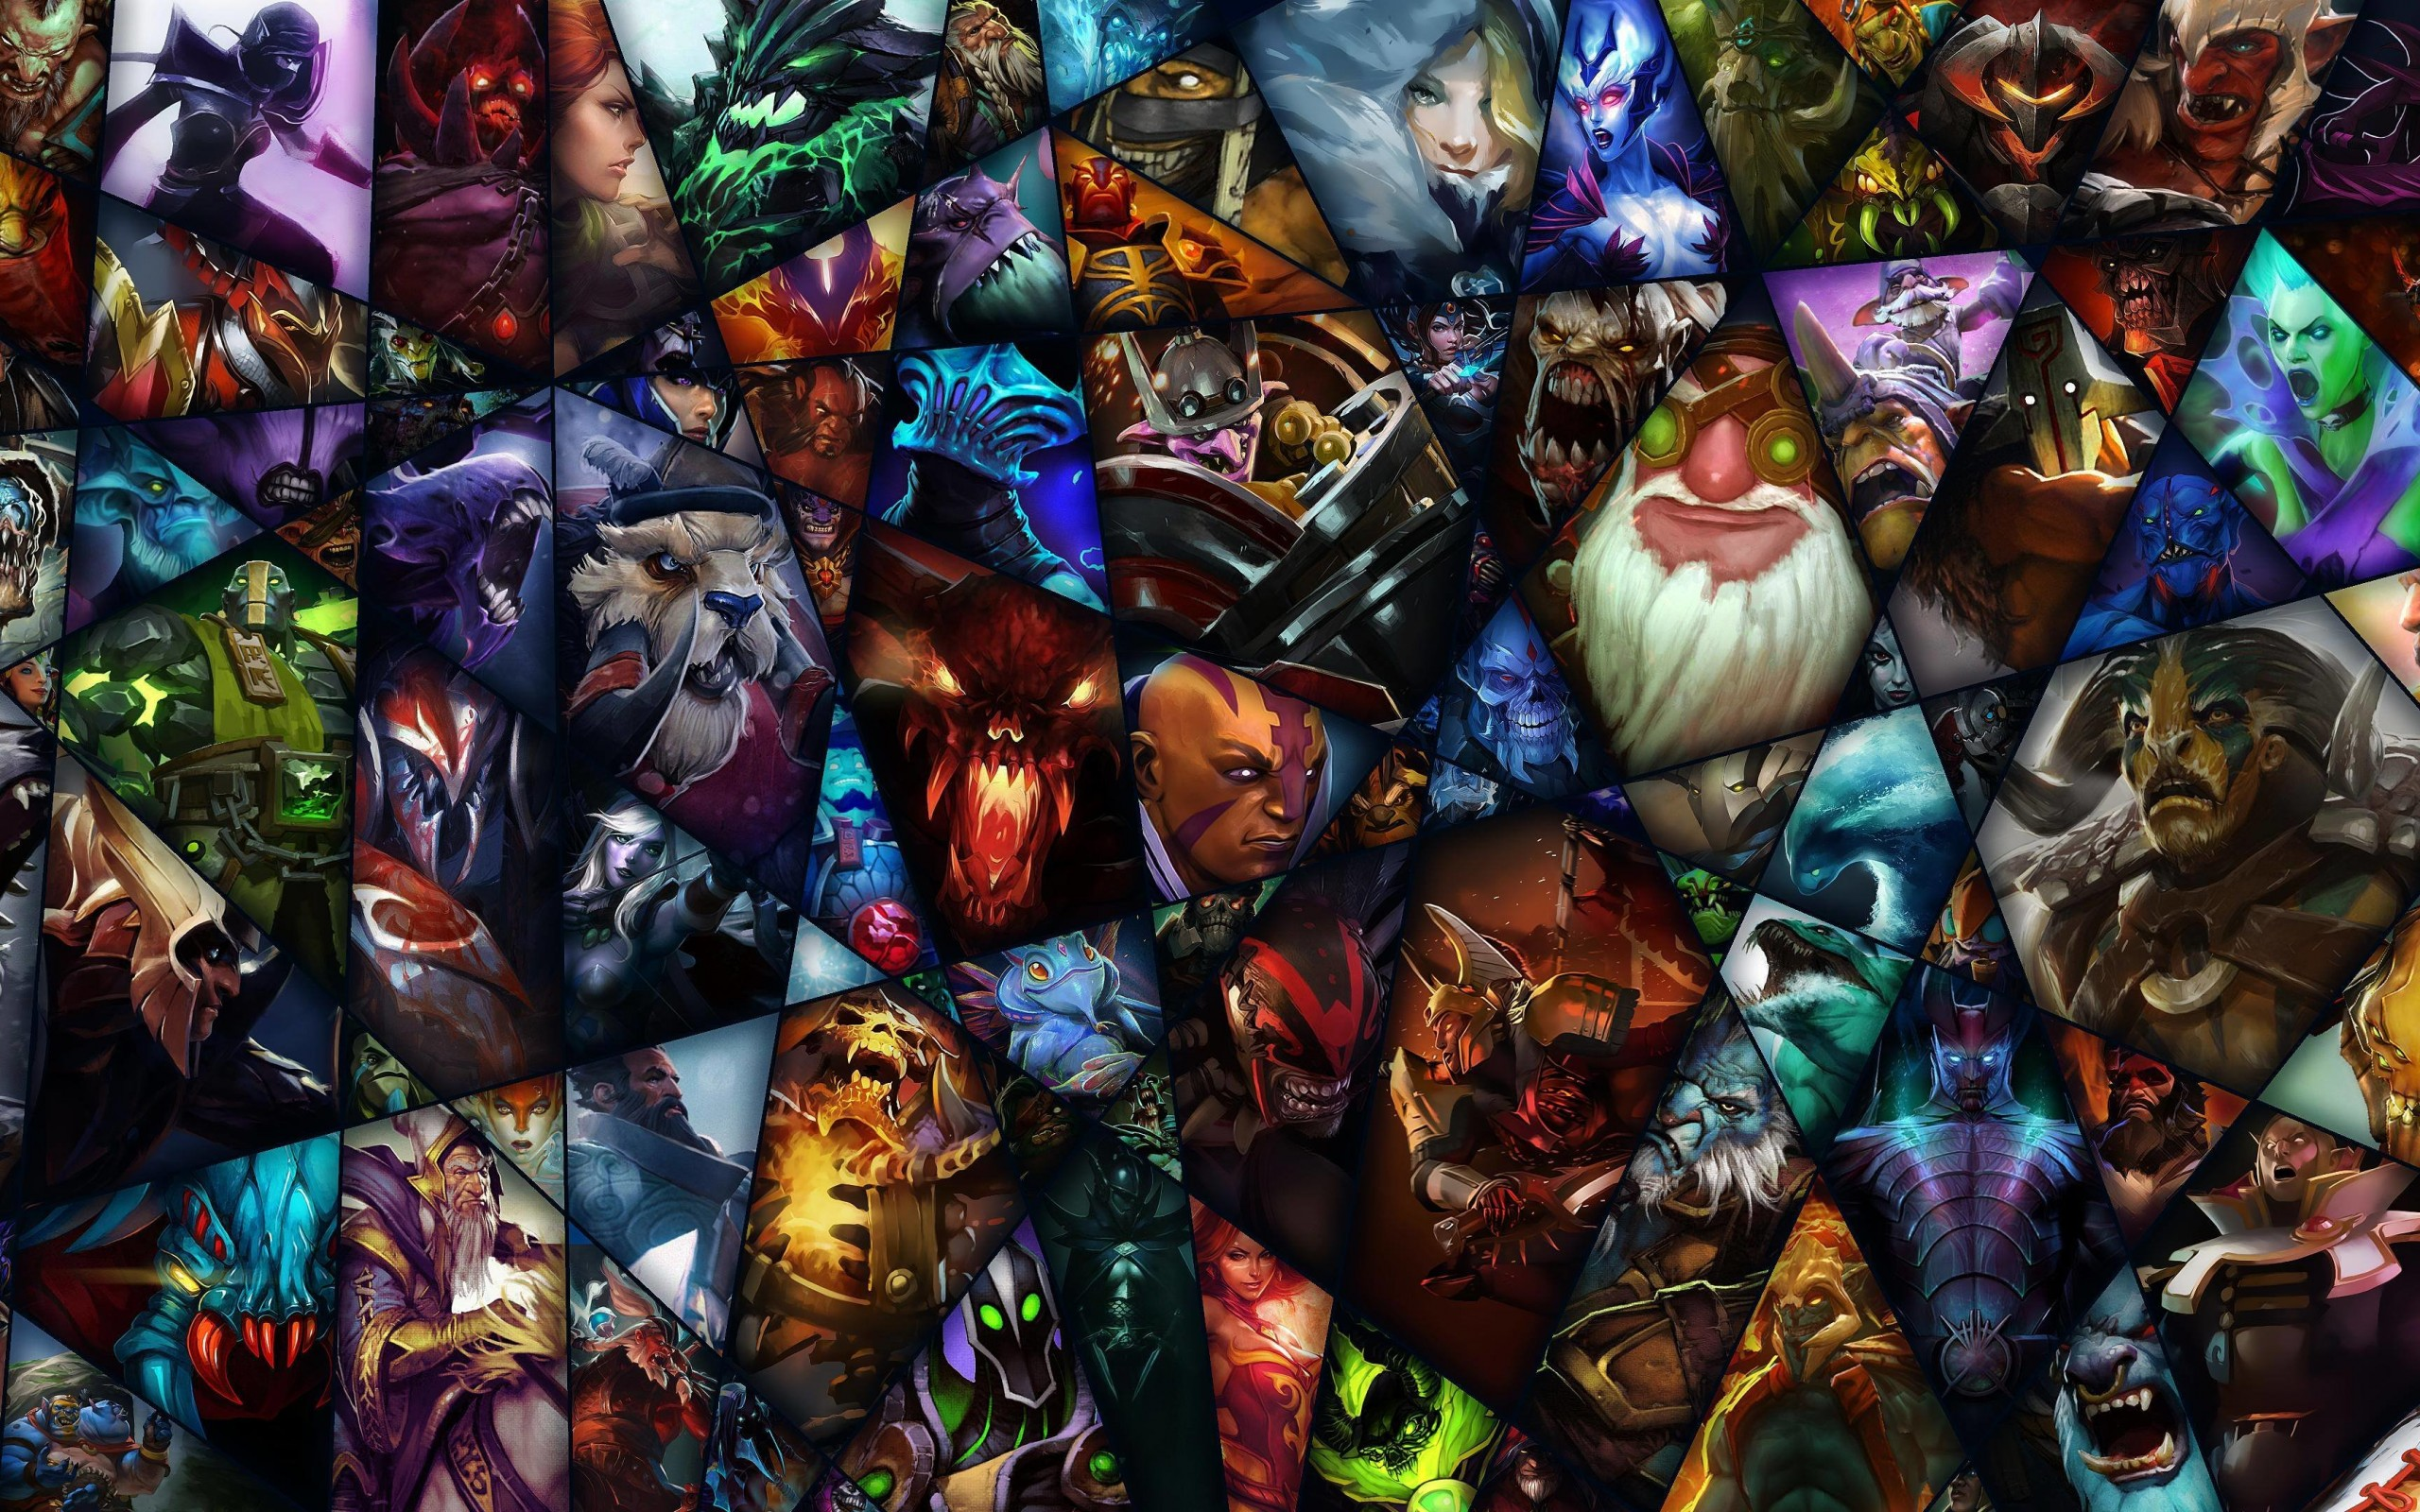 Dota 2 Wallpaper for Desktop 2560x1600